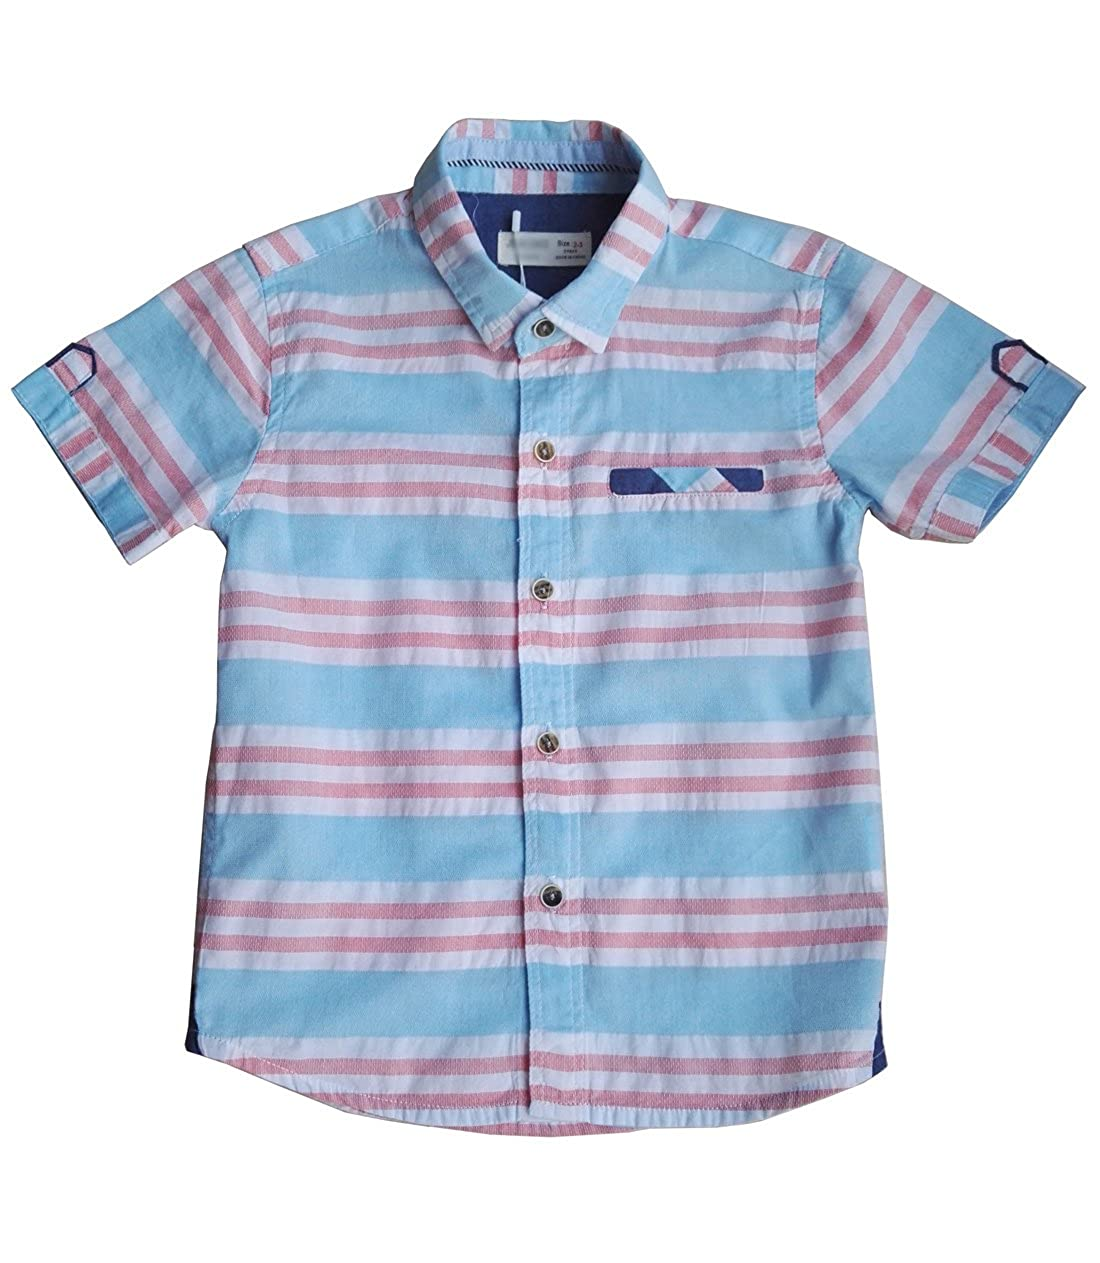 a62a5a55 Feature: Short sleeve, Button down, Stripe shirt,Checkered shirt. Made from  a light weight cotton fabric, Suit for Daily Casual, Summer vacation like  Camp, ...